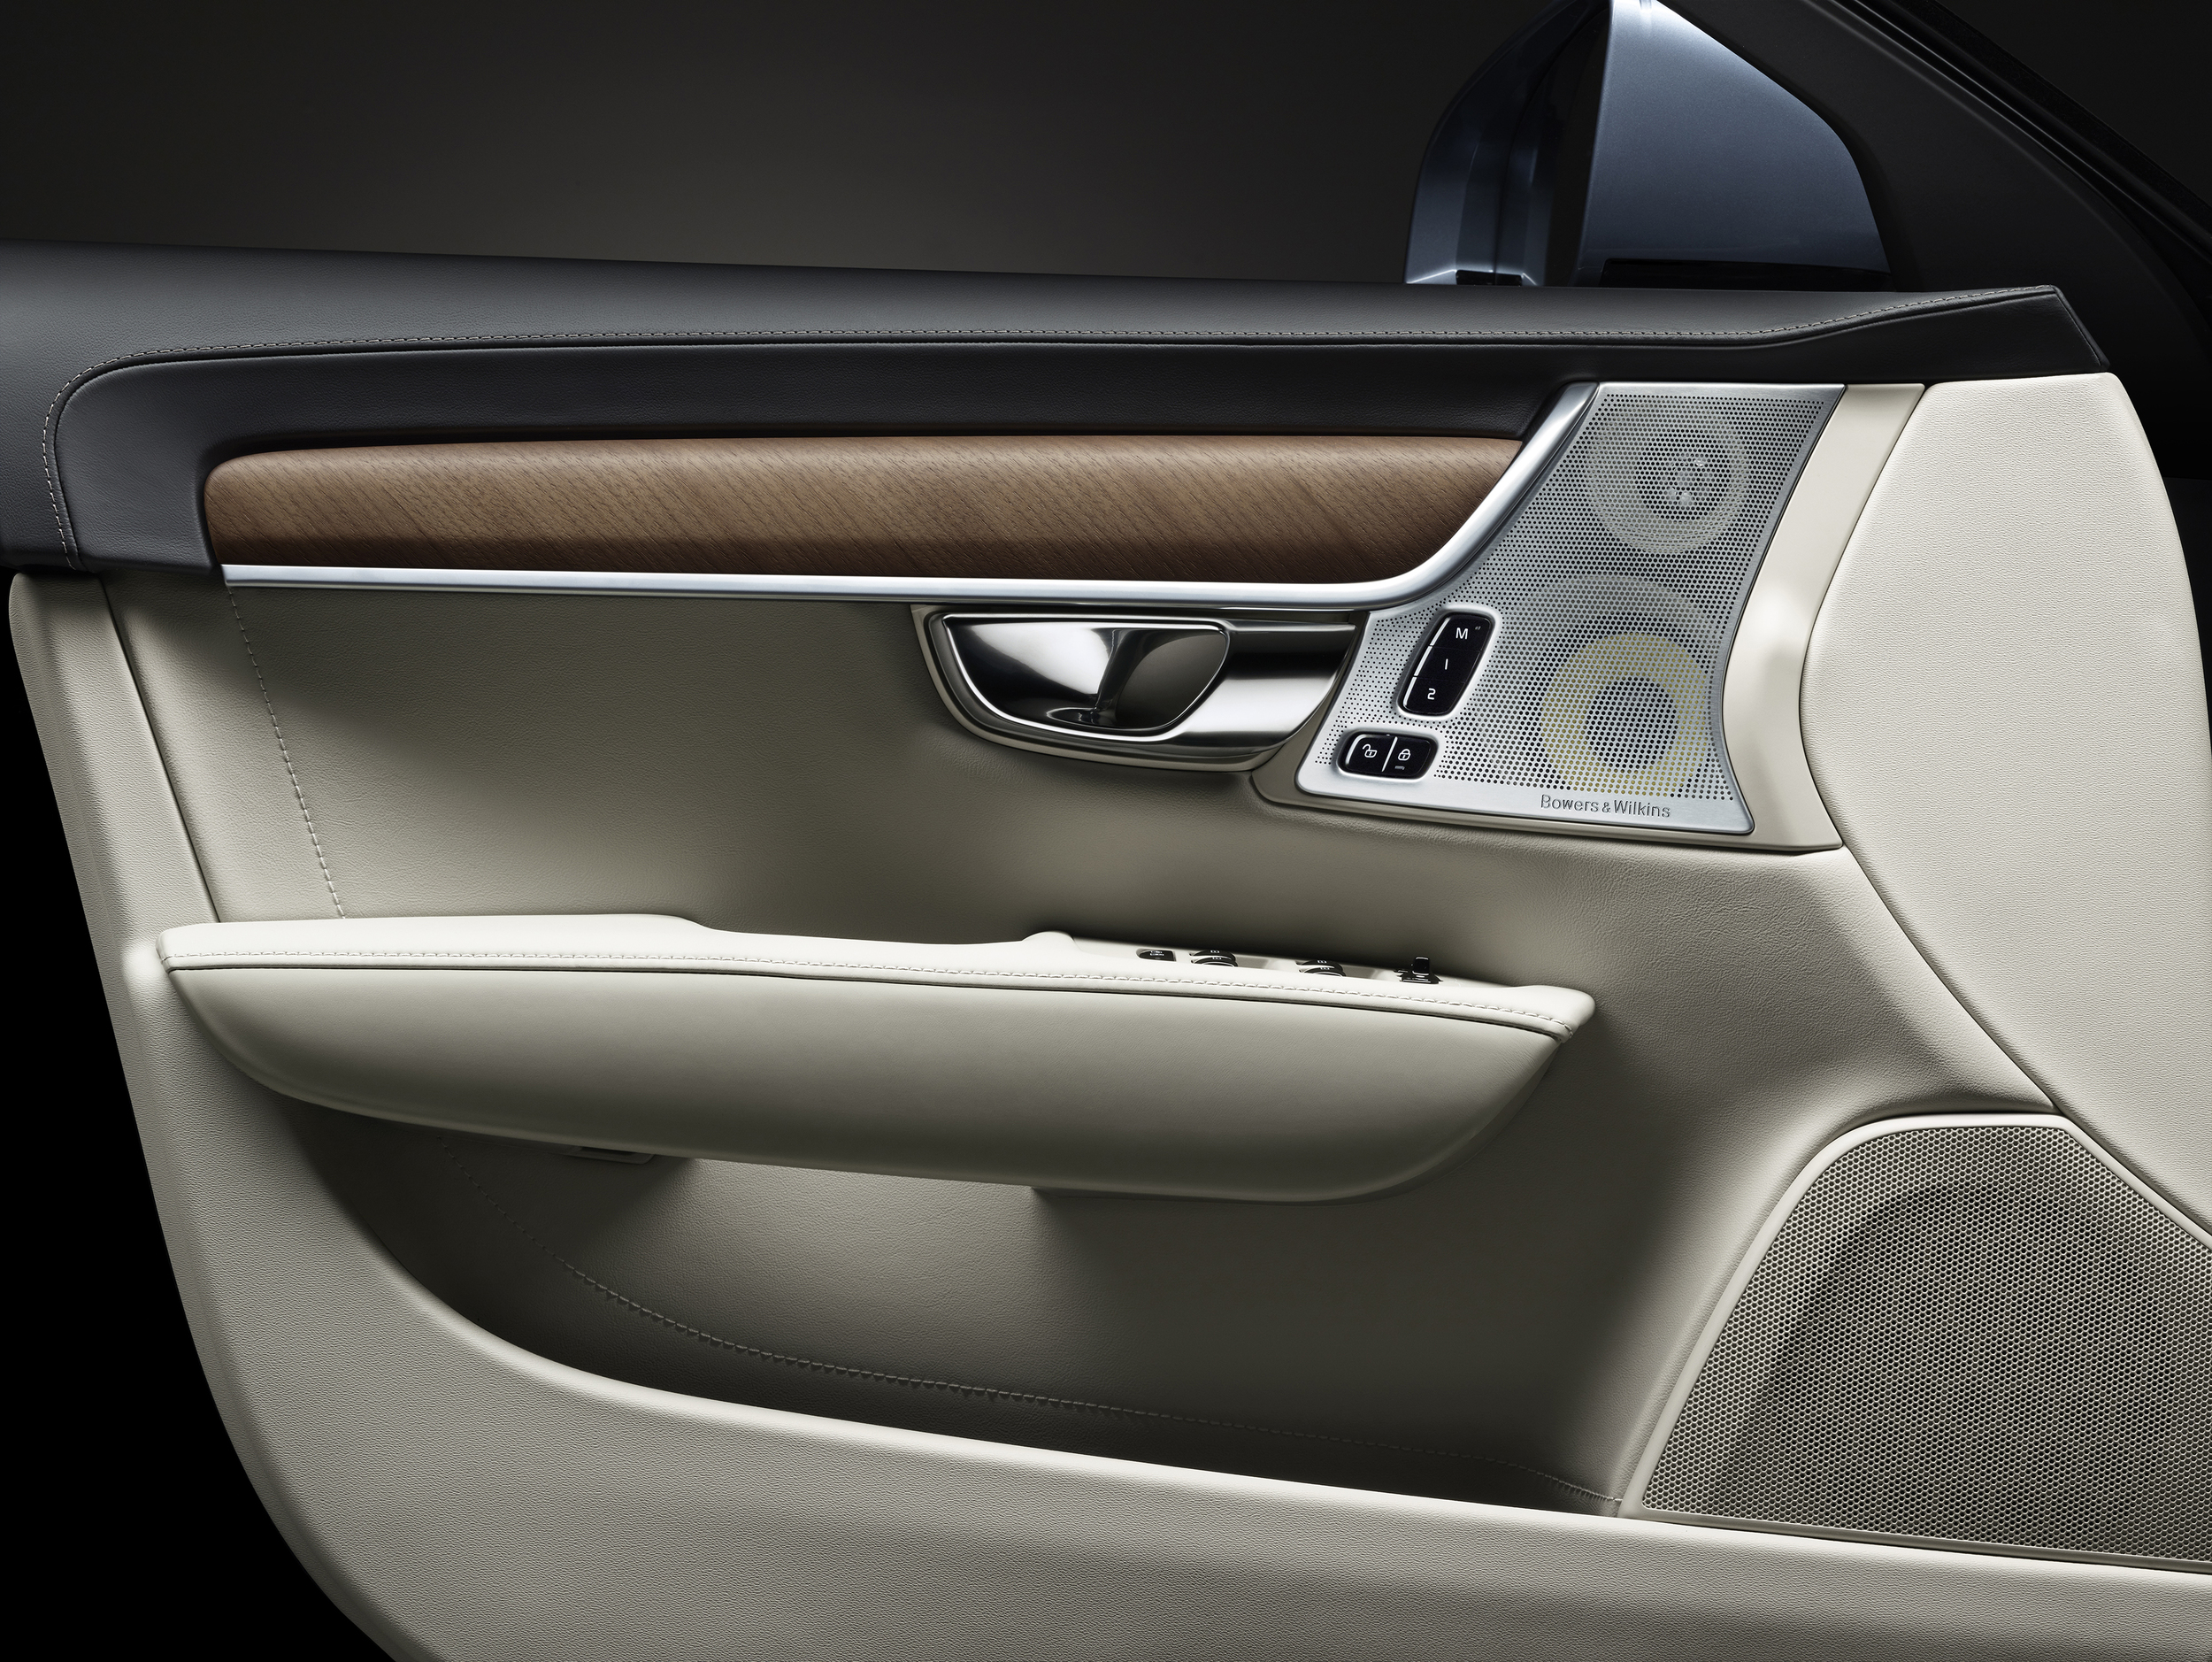 interior-driver-door-volvo-s90-1